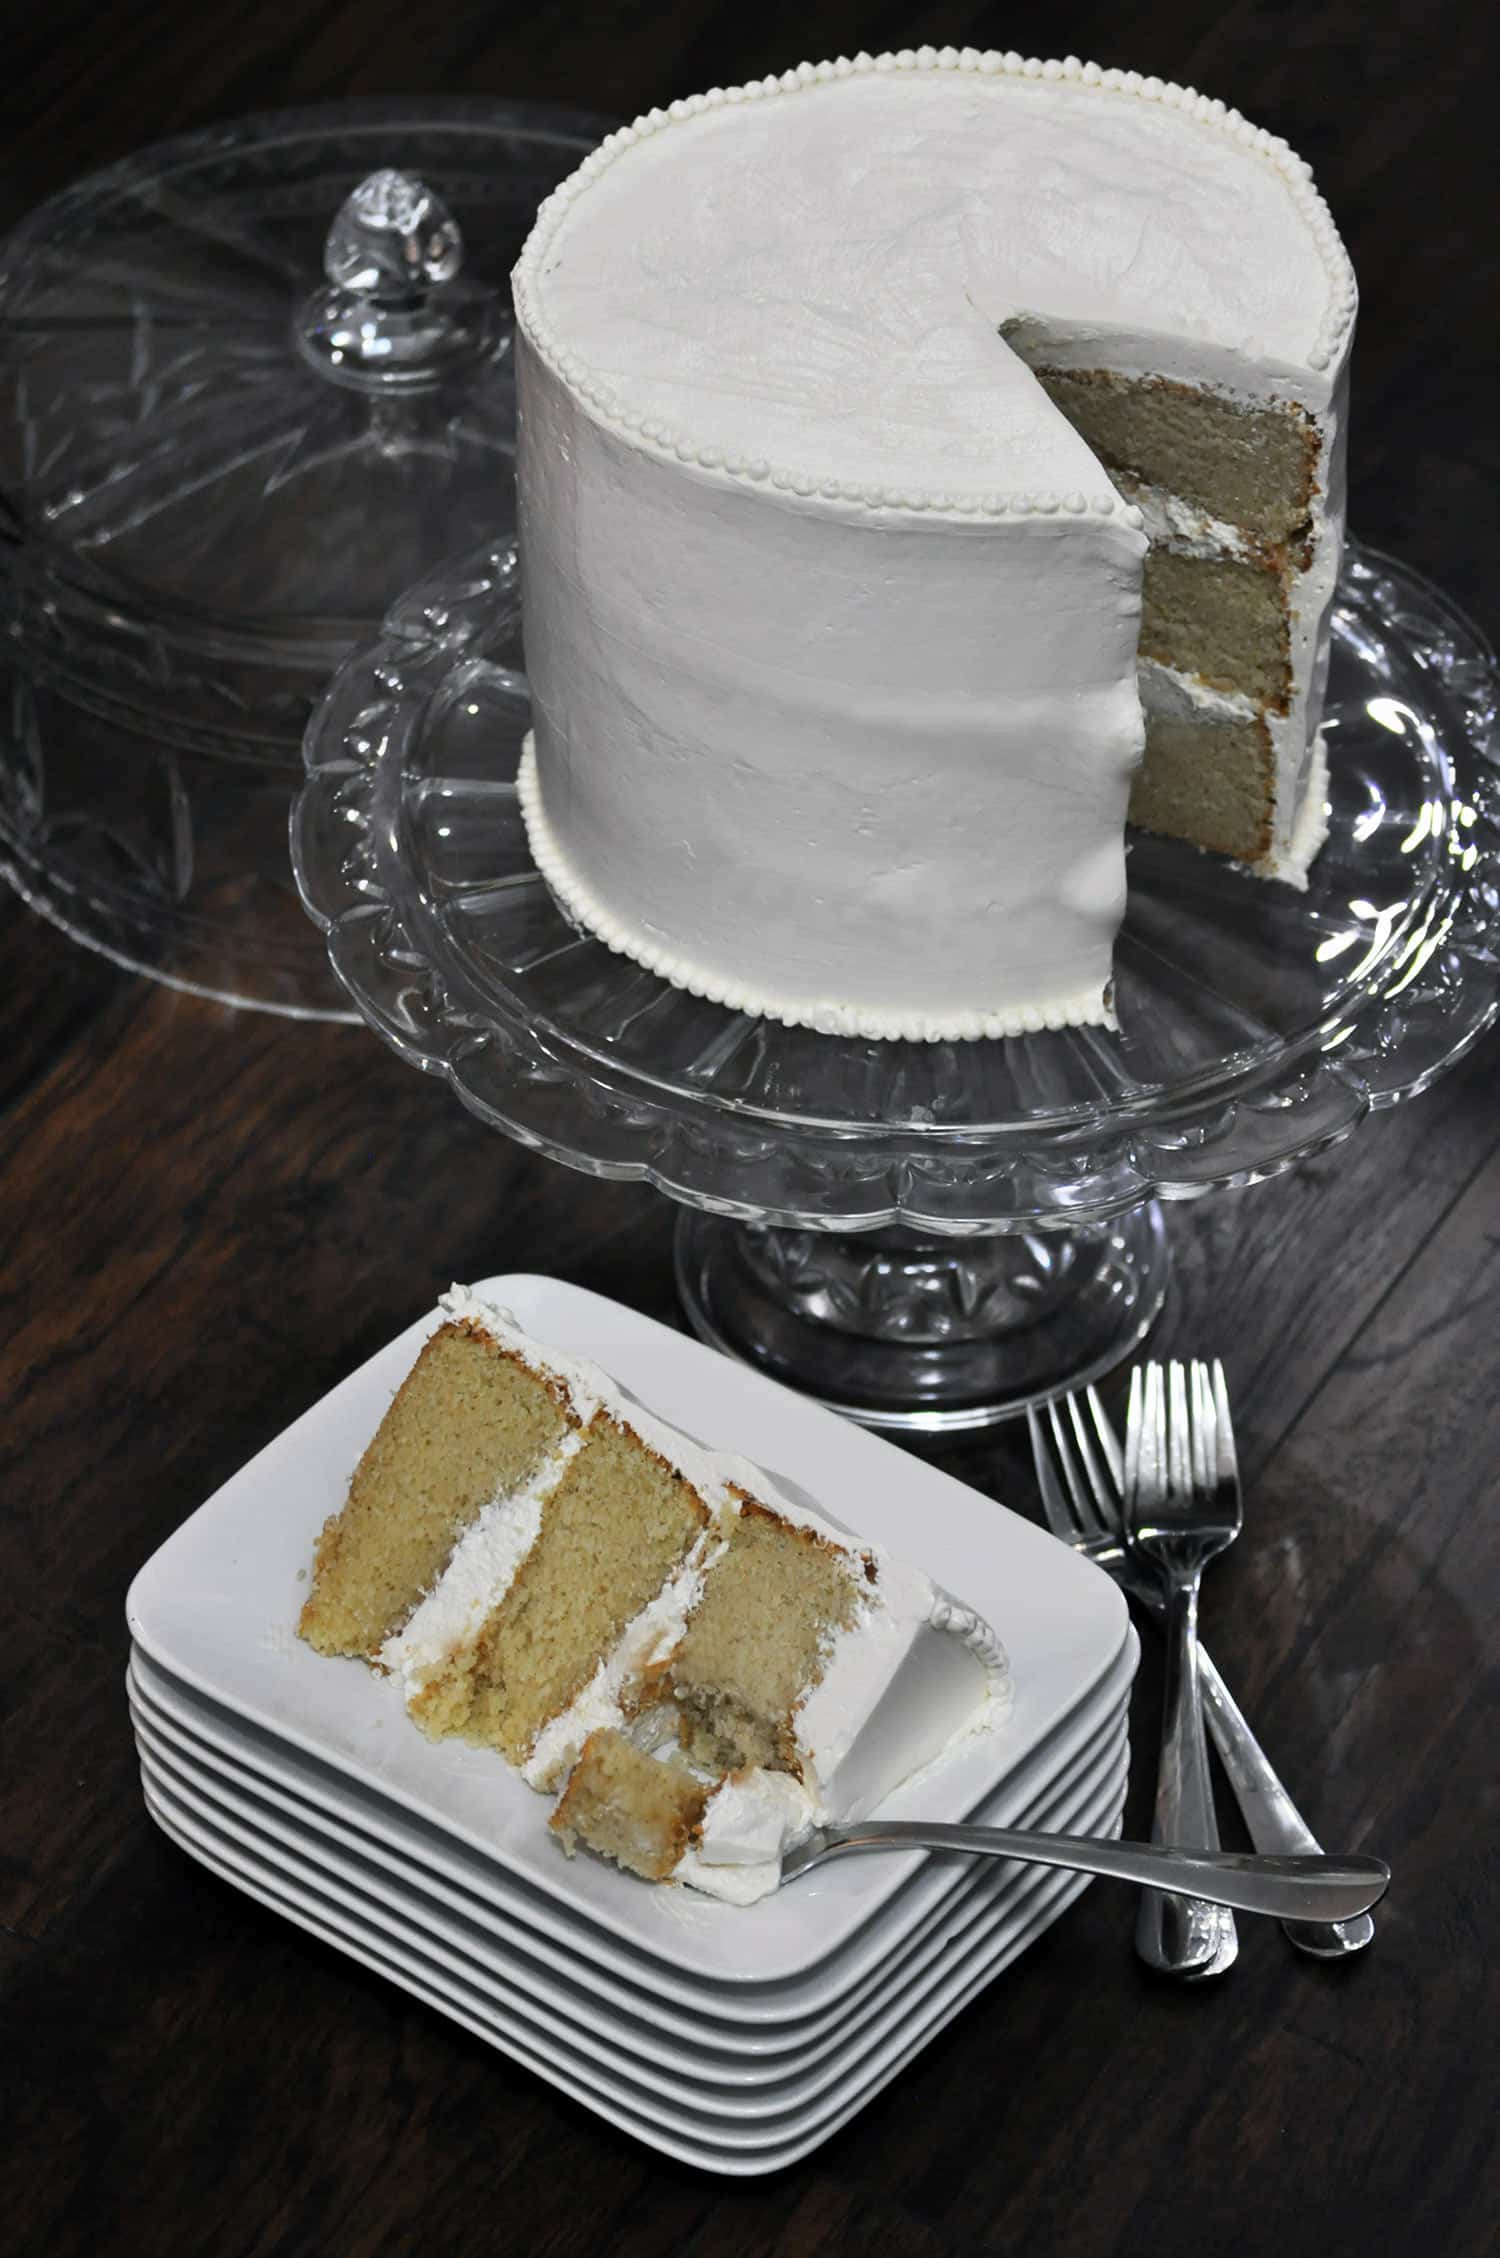 Vanilla Wedding Cake Recipes  Best Vanilla Cake Recipe Ever • Cakes